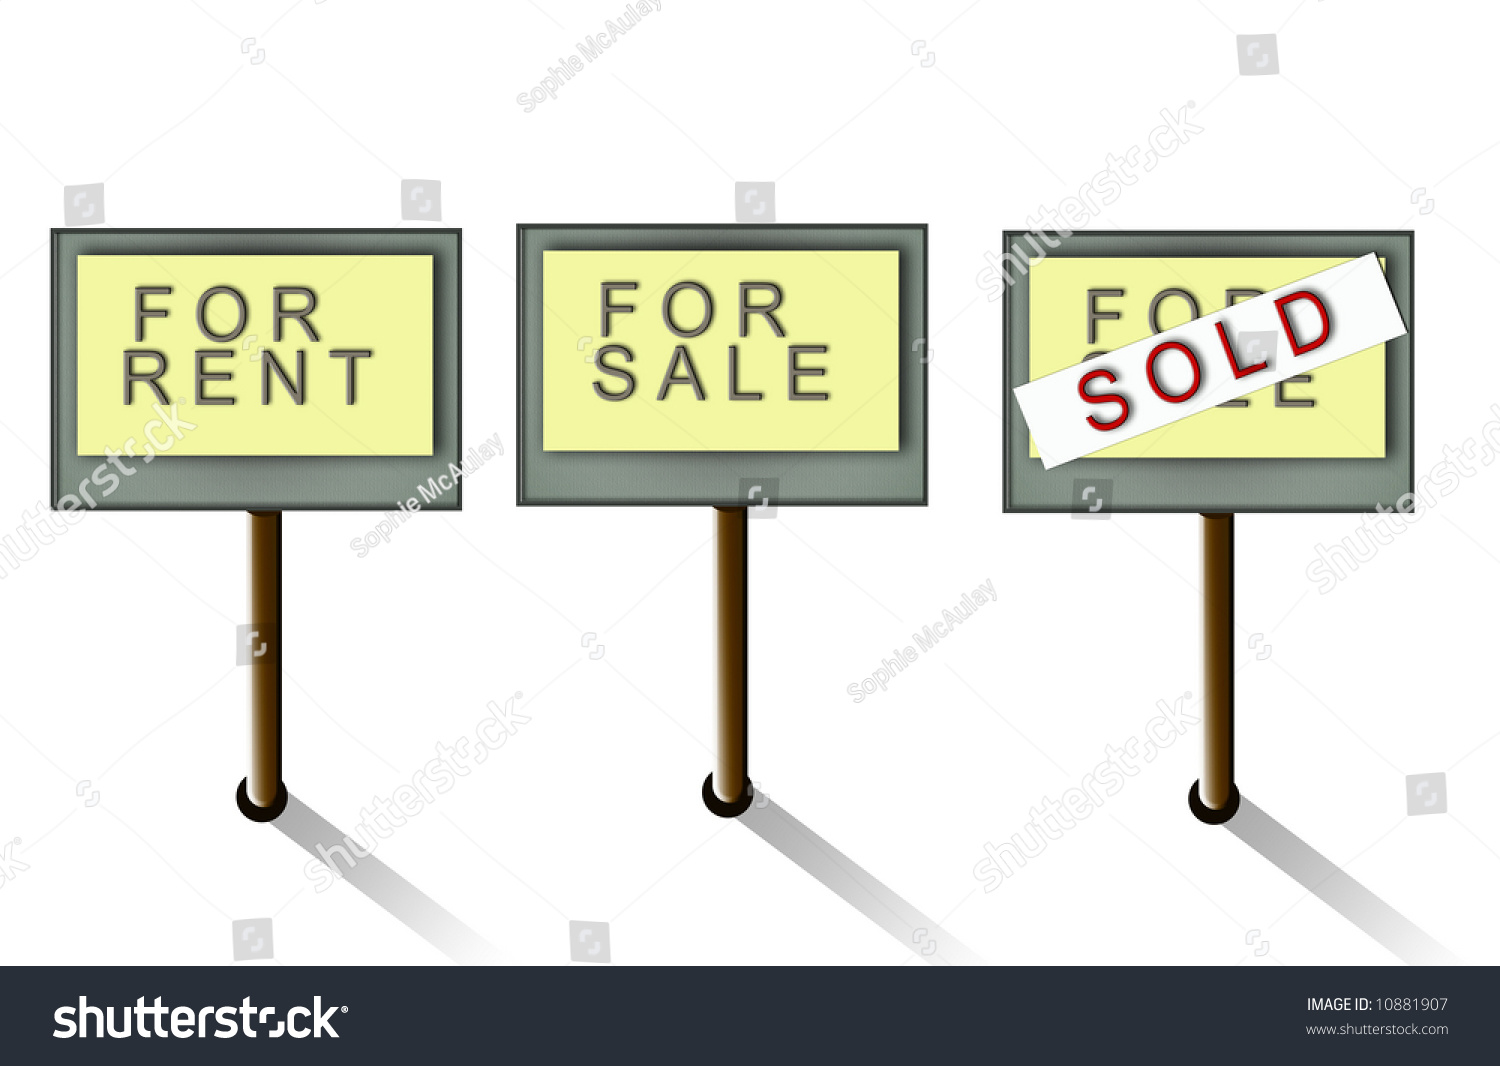 For Sale Sold Sign: Signs Depicting For Sale, Sold And For Rent Stock Photo